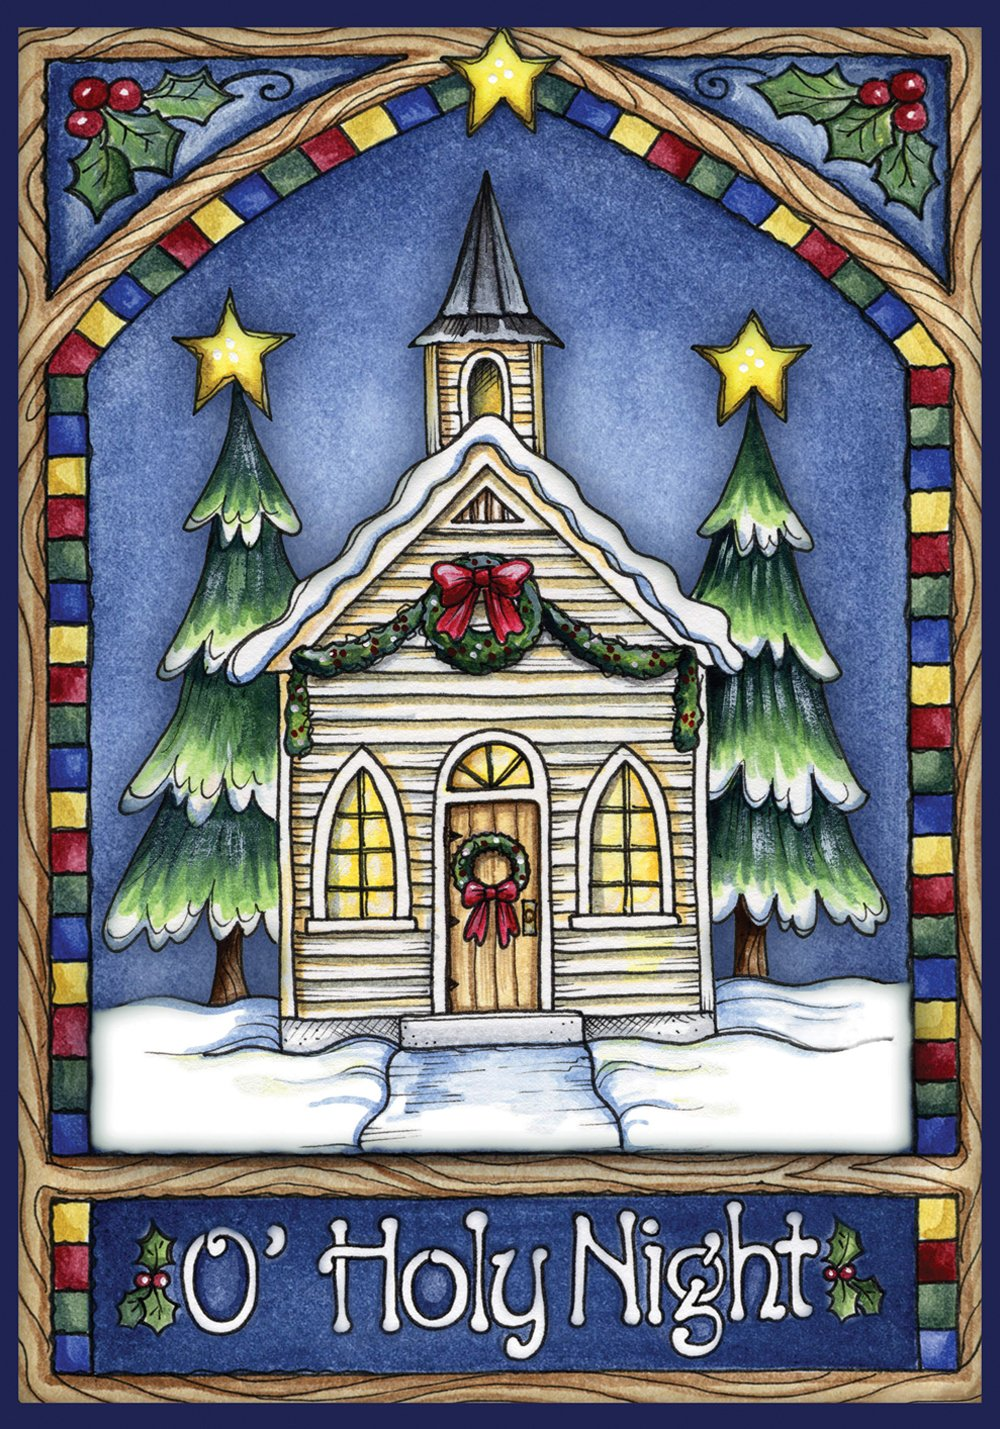 Toland Home Garden Christmas Church 12.5 x 18 Inch Decorative Stained Glass Holy Night Winter Snow Garden Flag - 111240